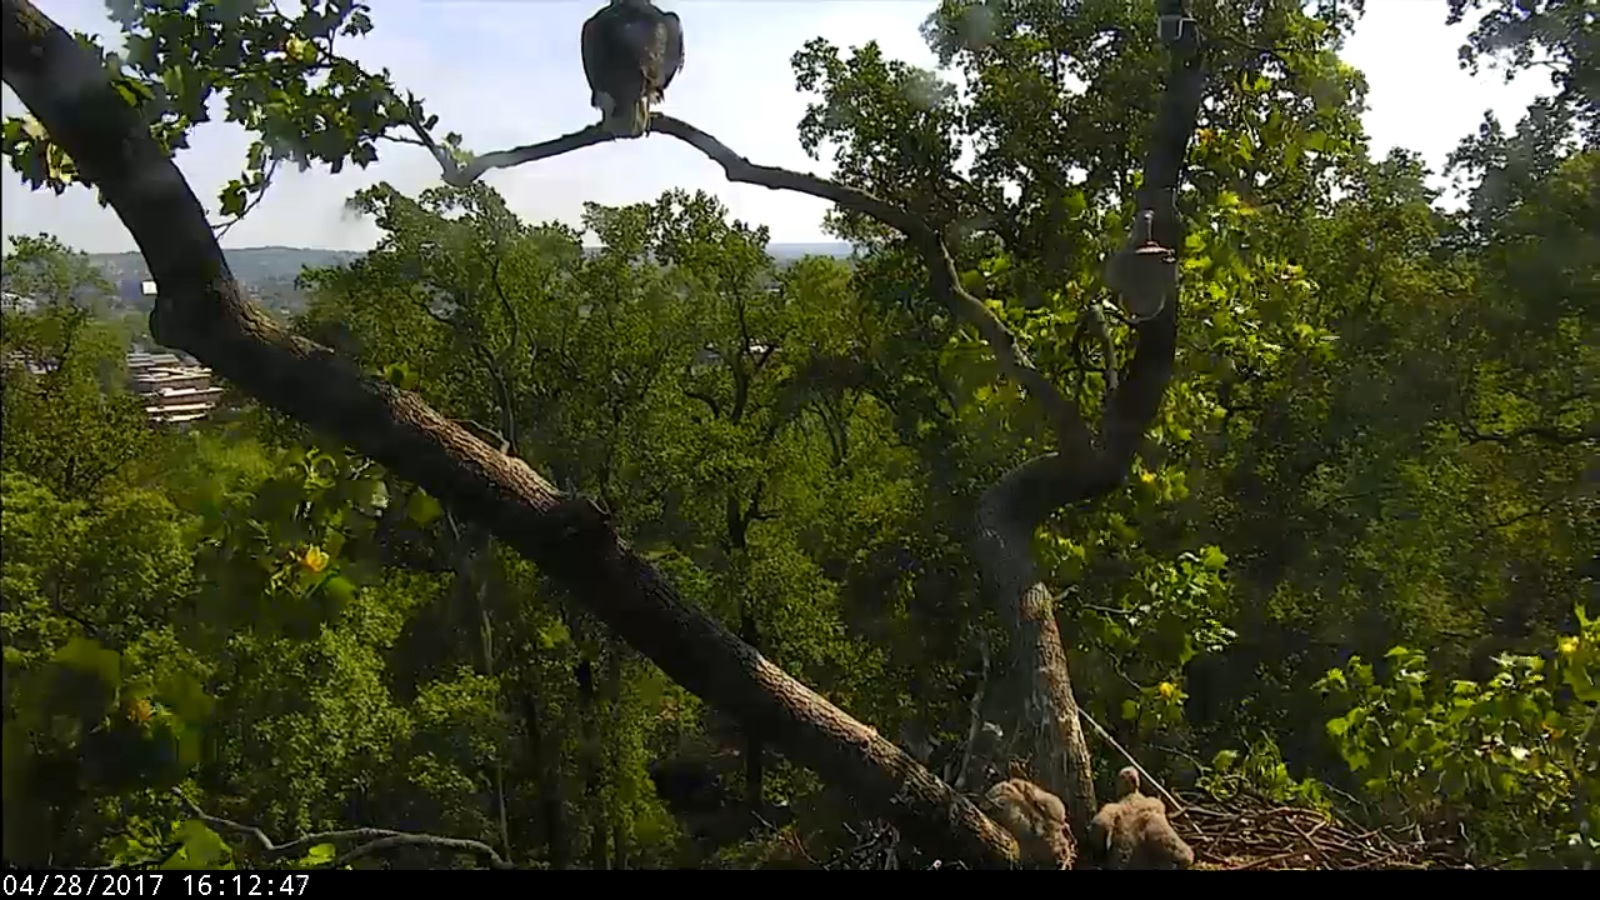 Mom or Dad is always perched nearby over the nest